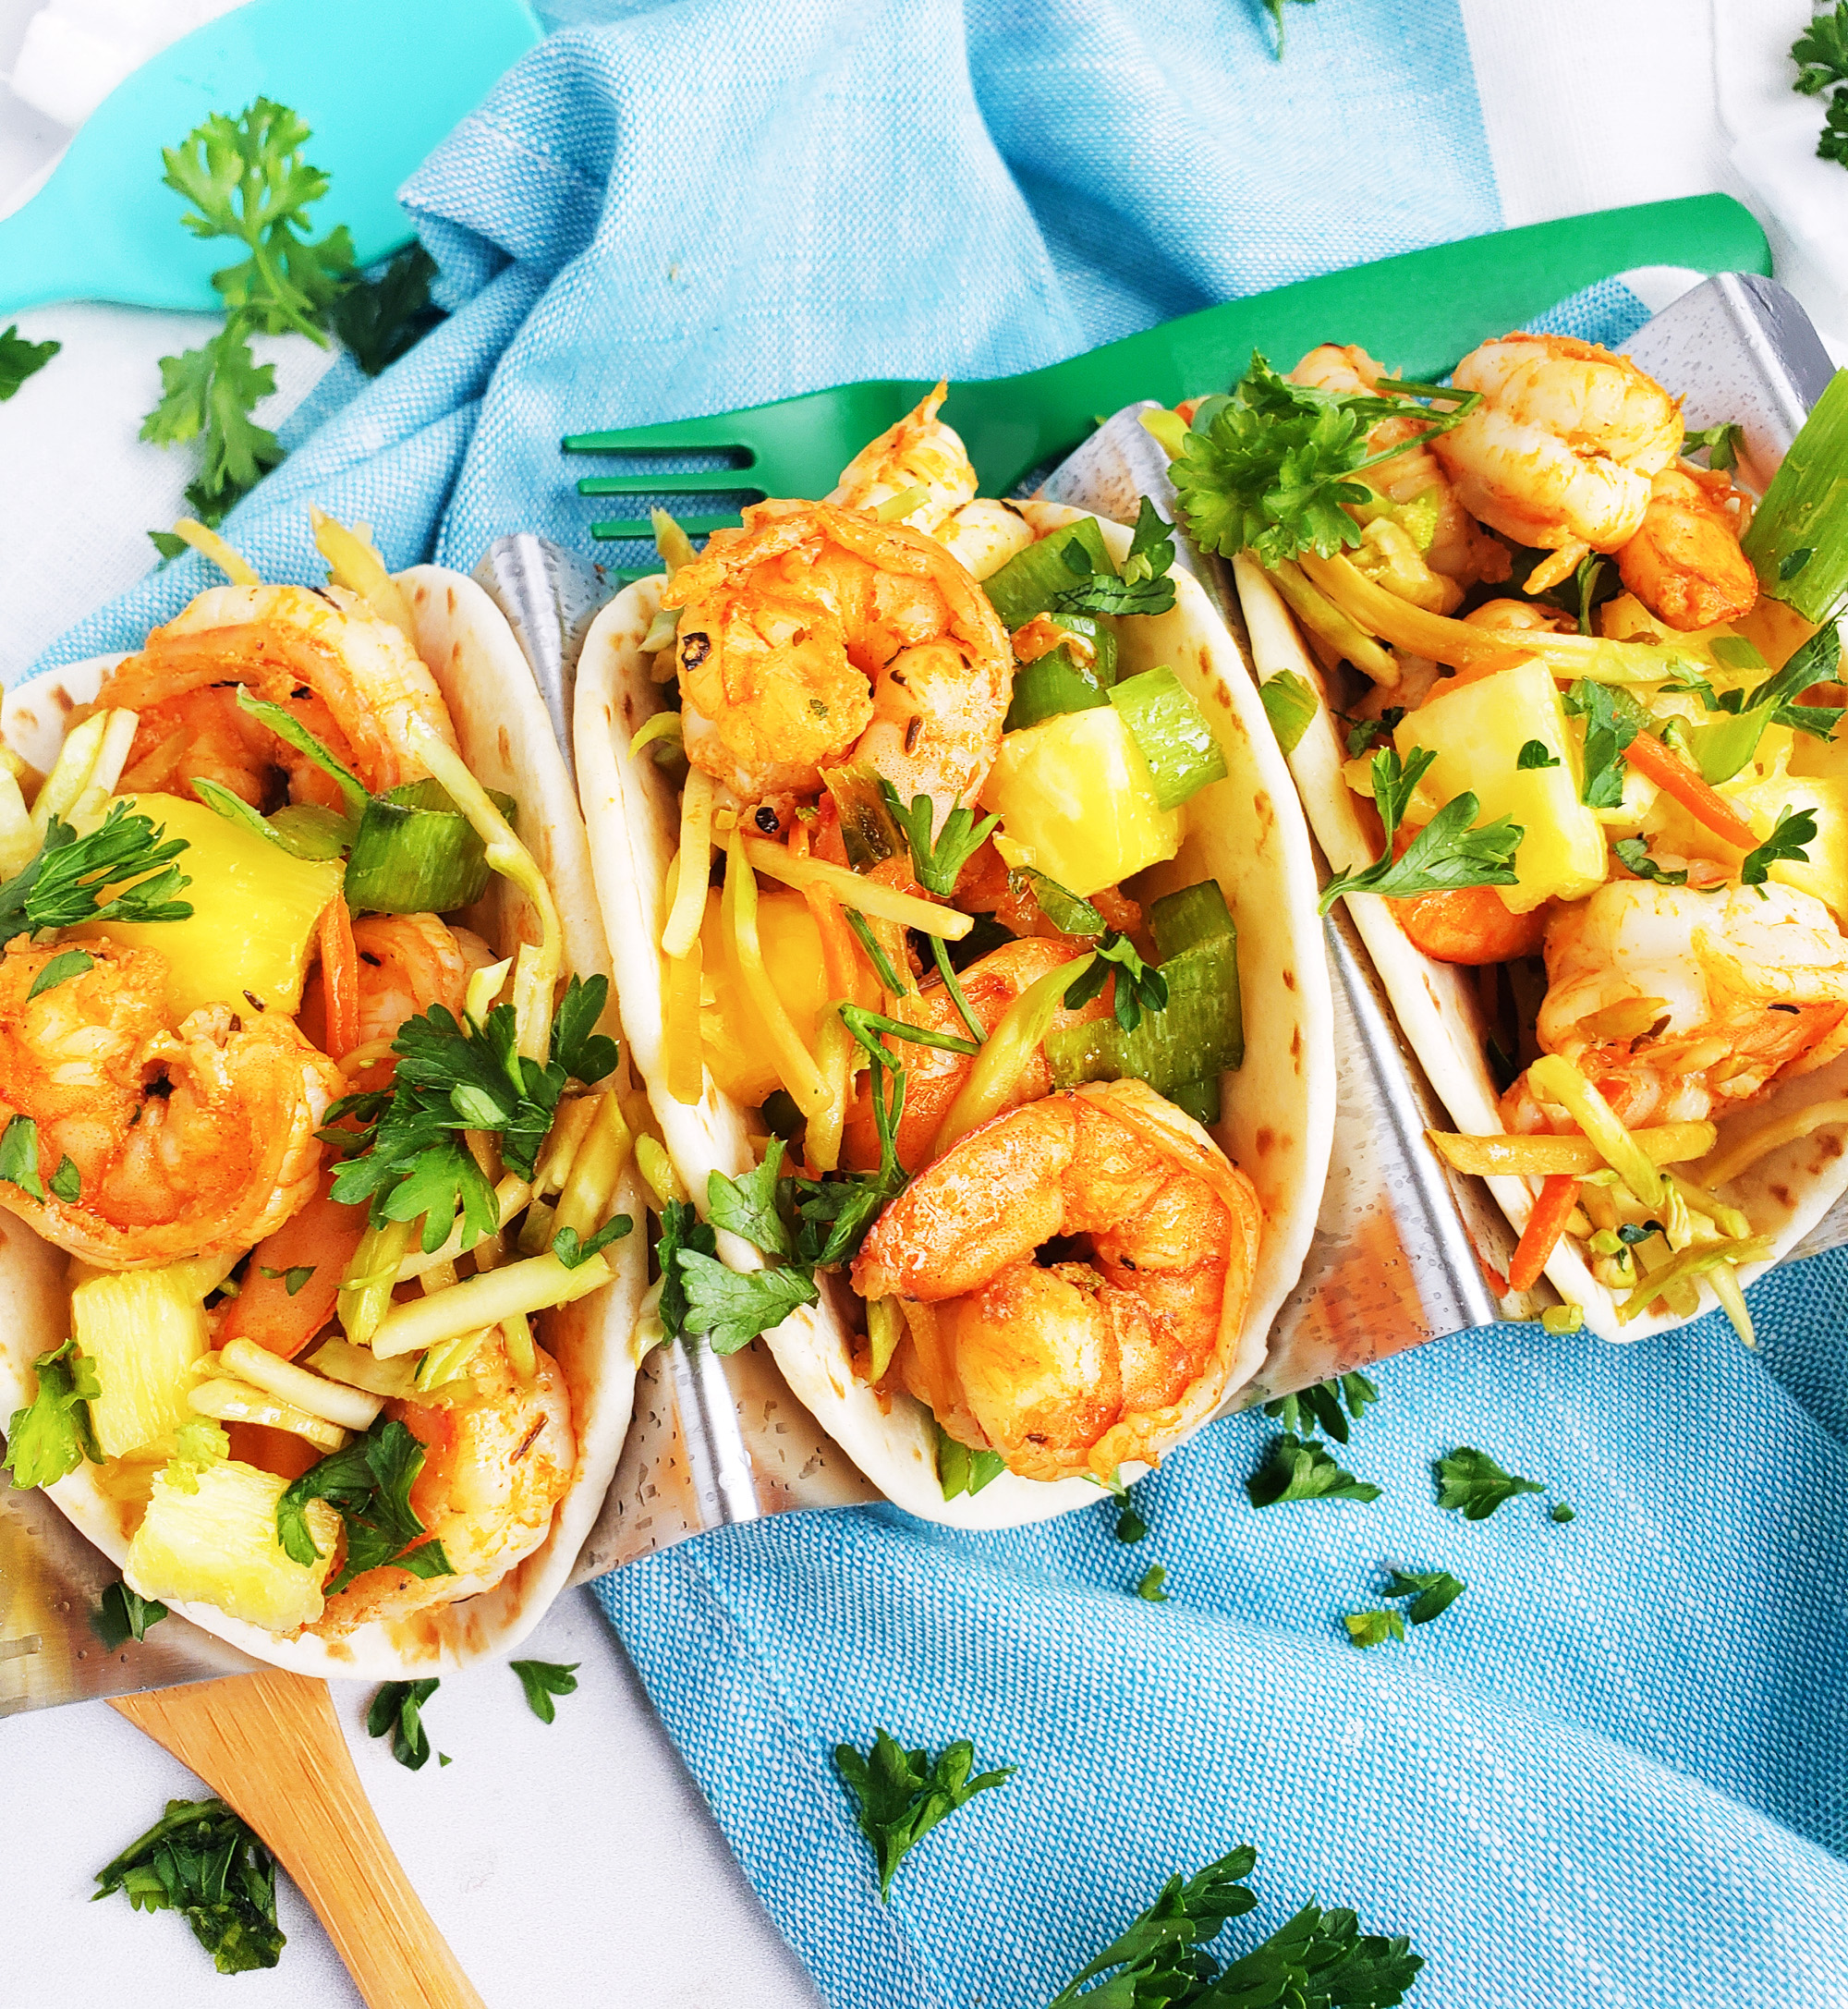 These Spicy Jerk Shrimp Mini Tacos are loaded with so much flavor and super easy to make! These street tacos are piled high with marinated slaw, jerk shrimp, pineapple, and green onions. Littleeatsandthings.com